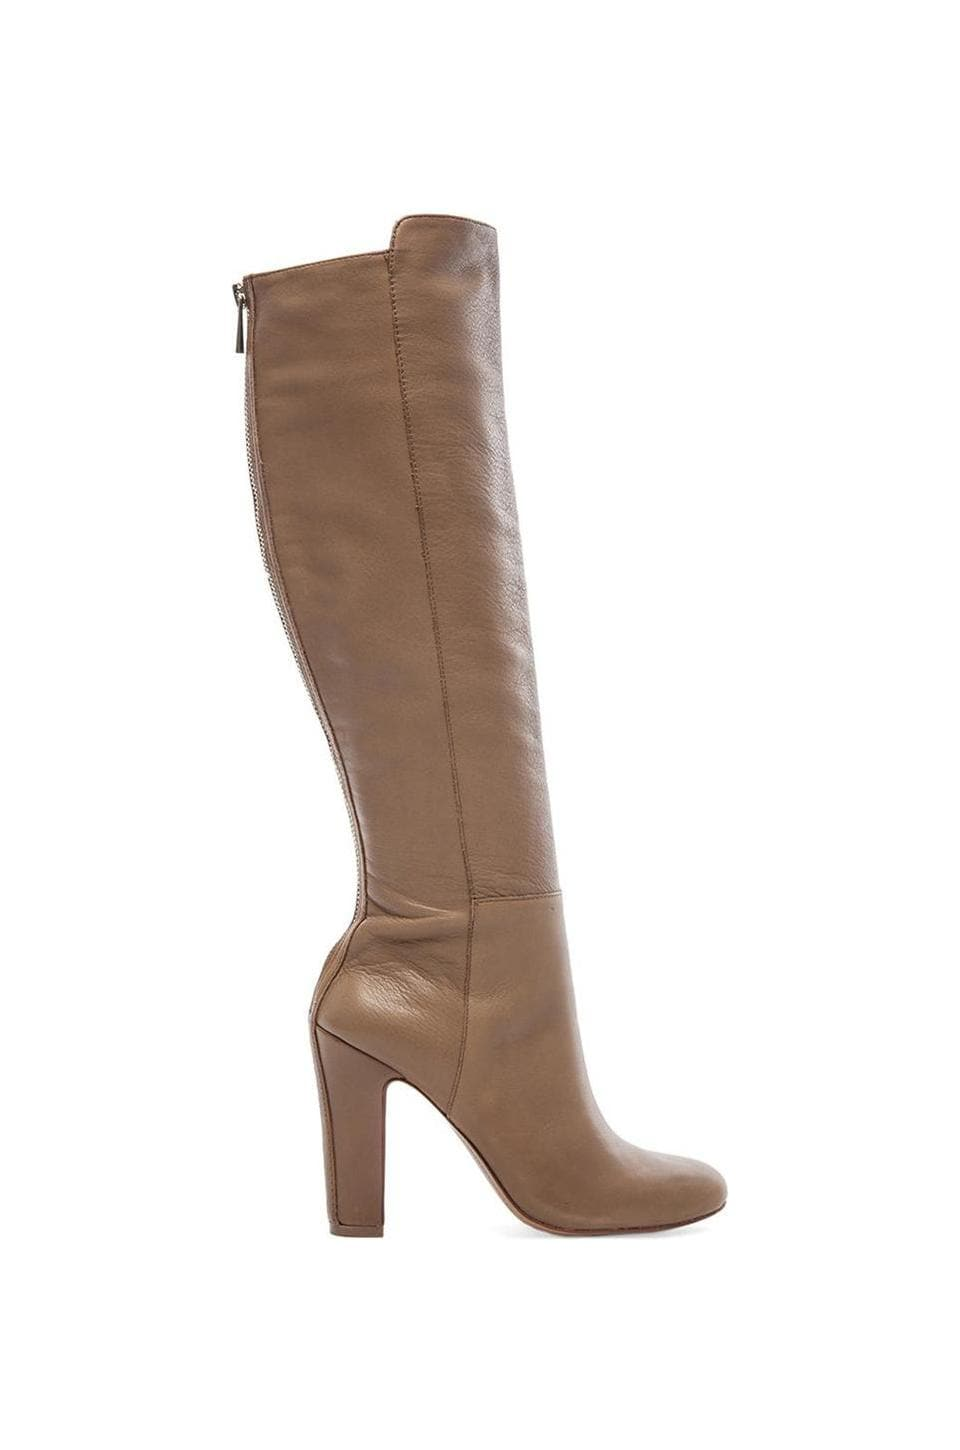 Vince Camuto Carleen Boot in New Taupe